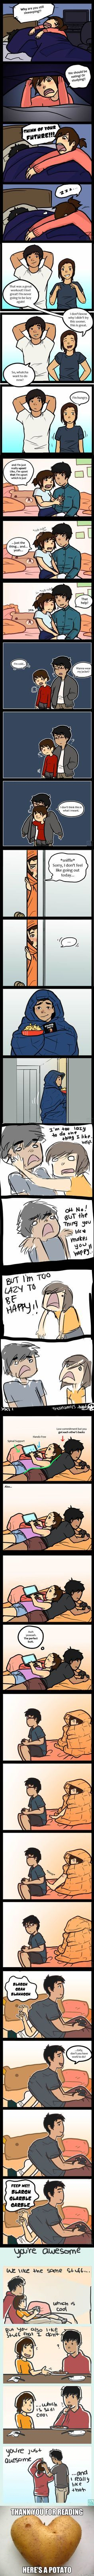 Artist Illustrates The Derpy Nerdy Relationship I LOVE THIS :')